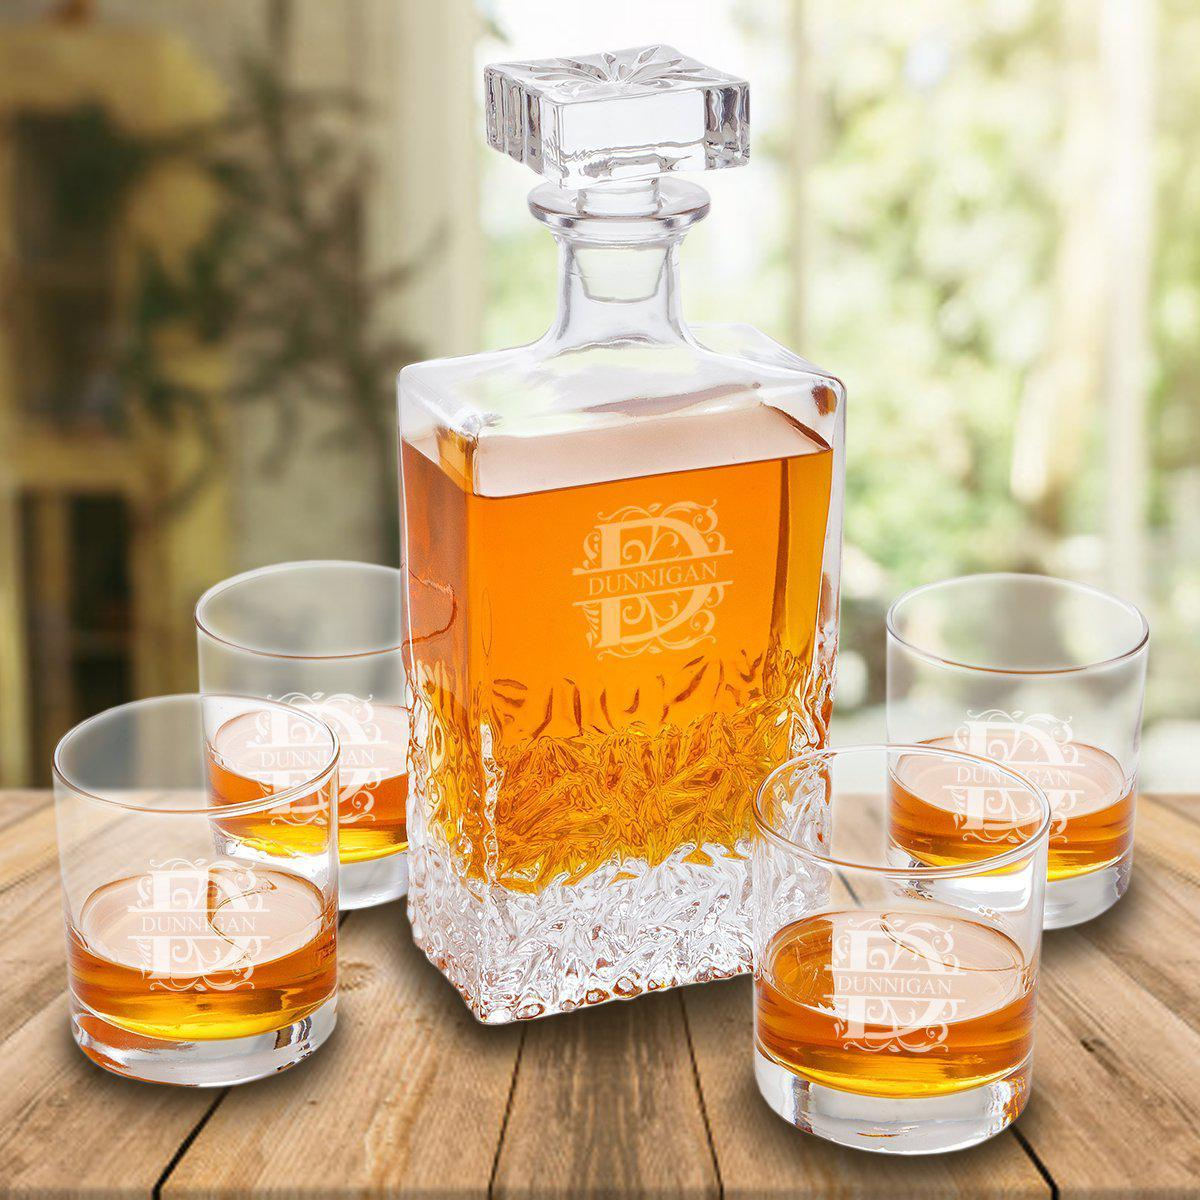 Personalized Whiskey Decanter Gift Set w/ 4 Lowball Glasses